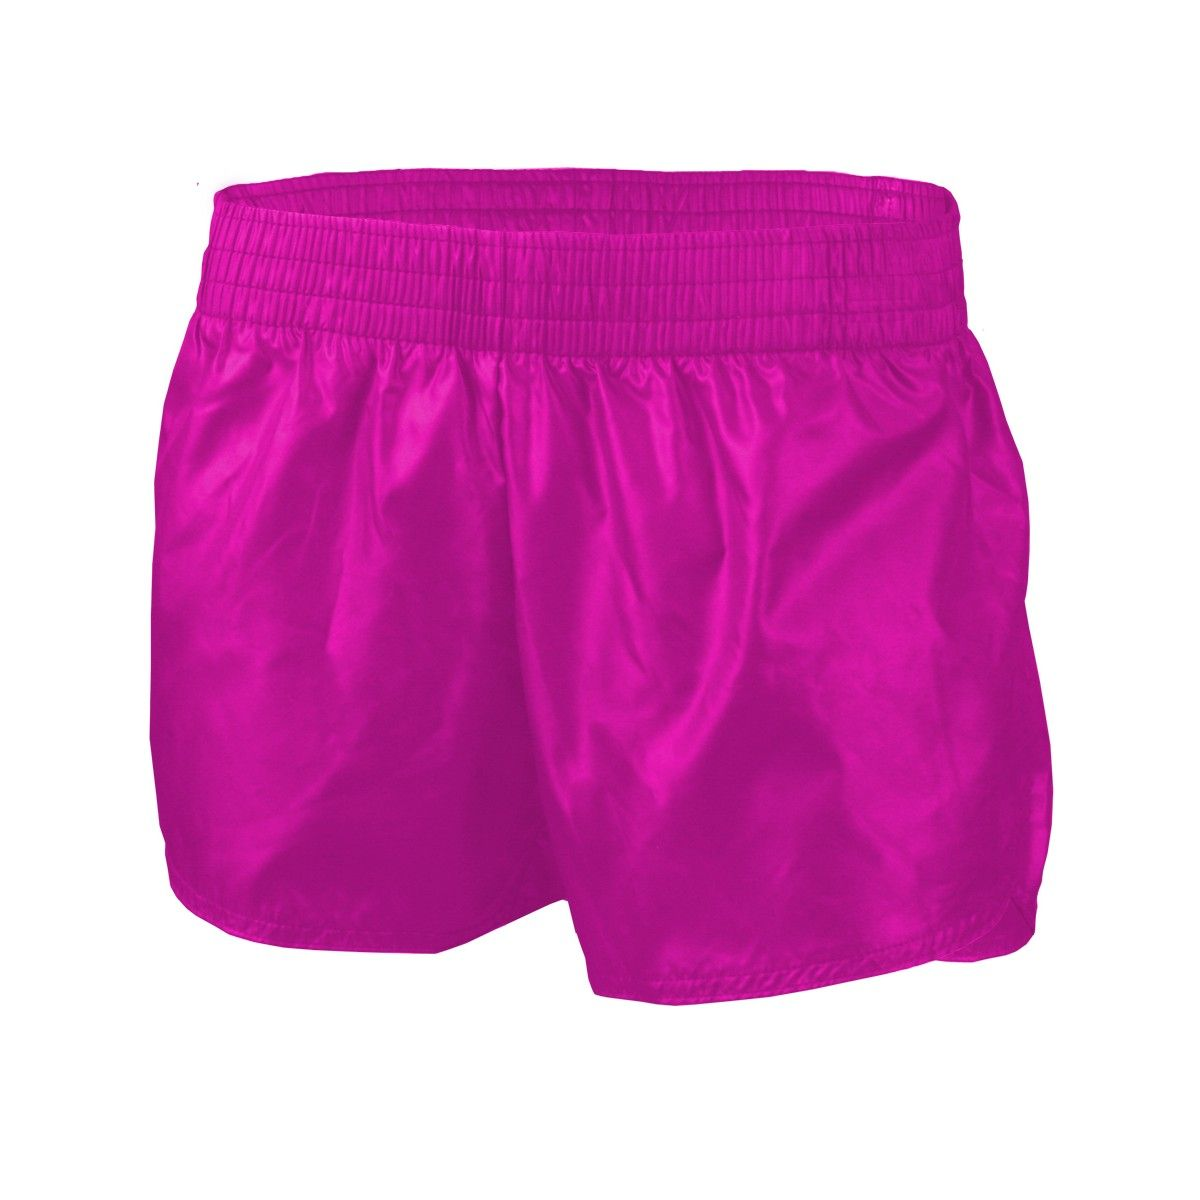 Juniors Misses Girls youth shorts Pink white Sports small med large XL NEW cheer